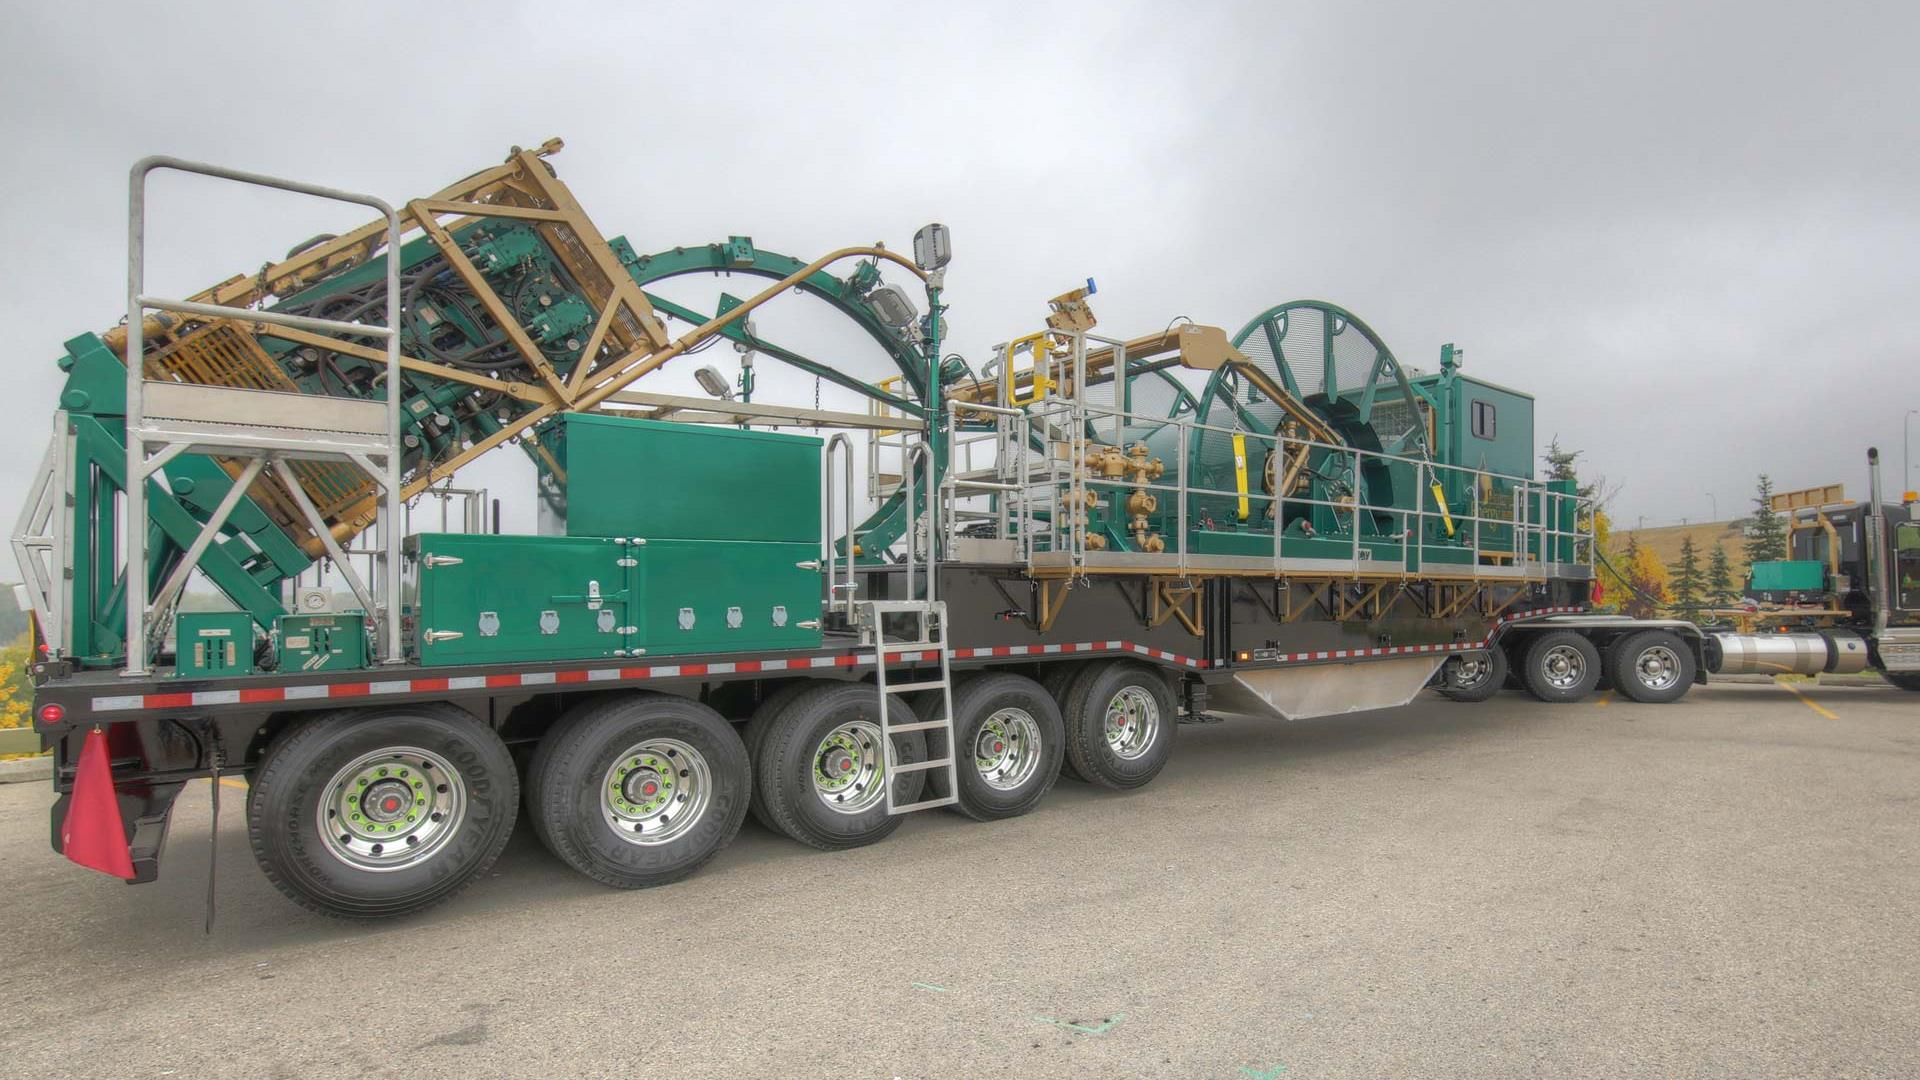 Trailer-mounted Coiled Tubing Units